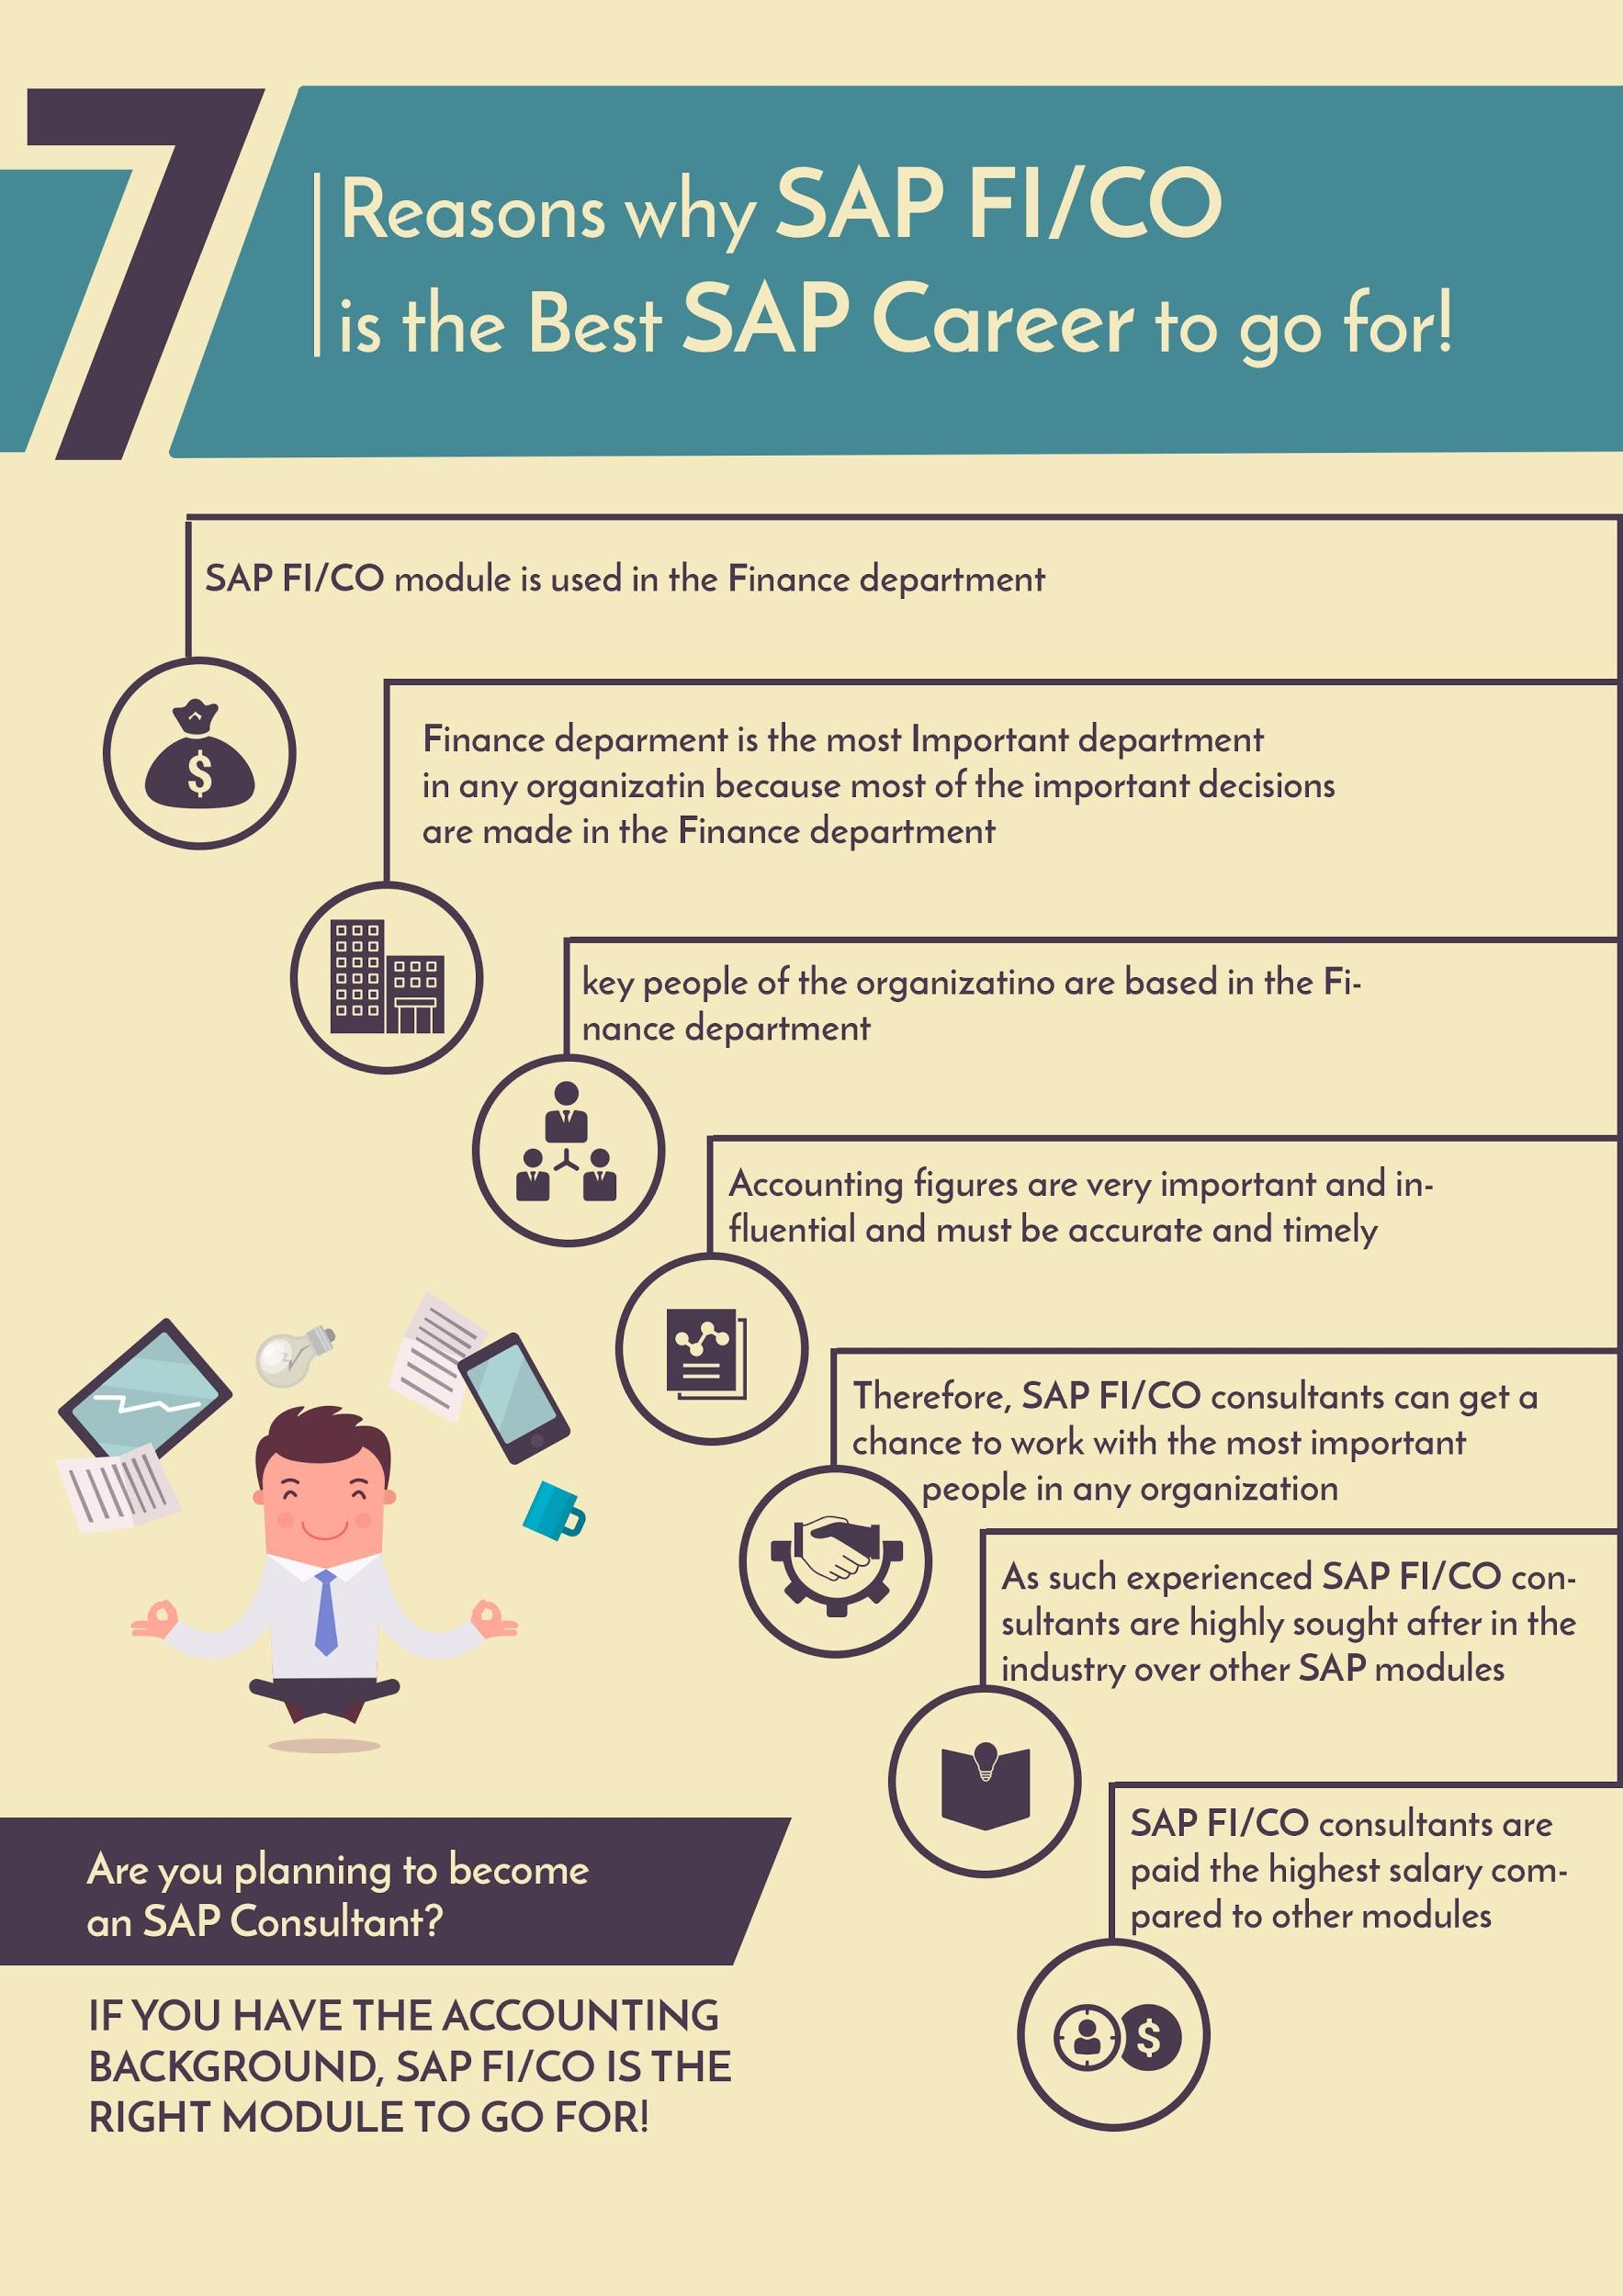 Reasons why SAP FICO is the best SAP career to go for